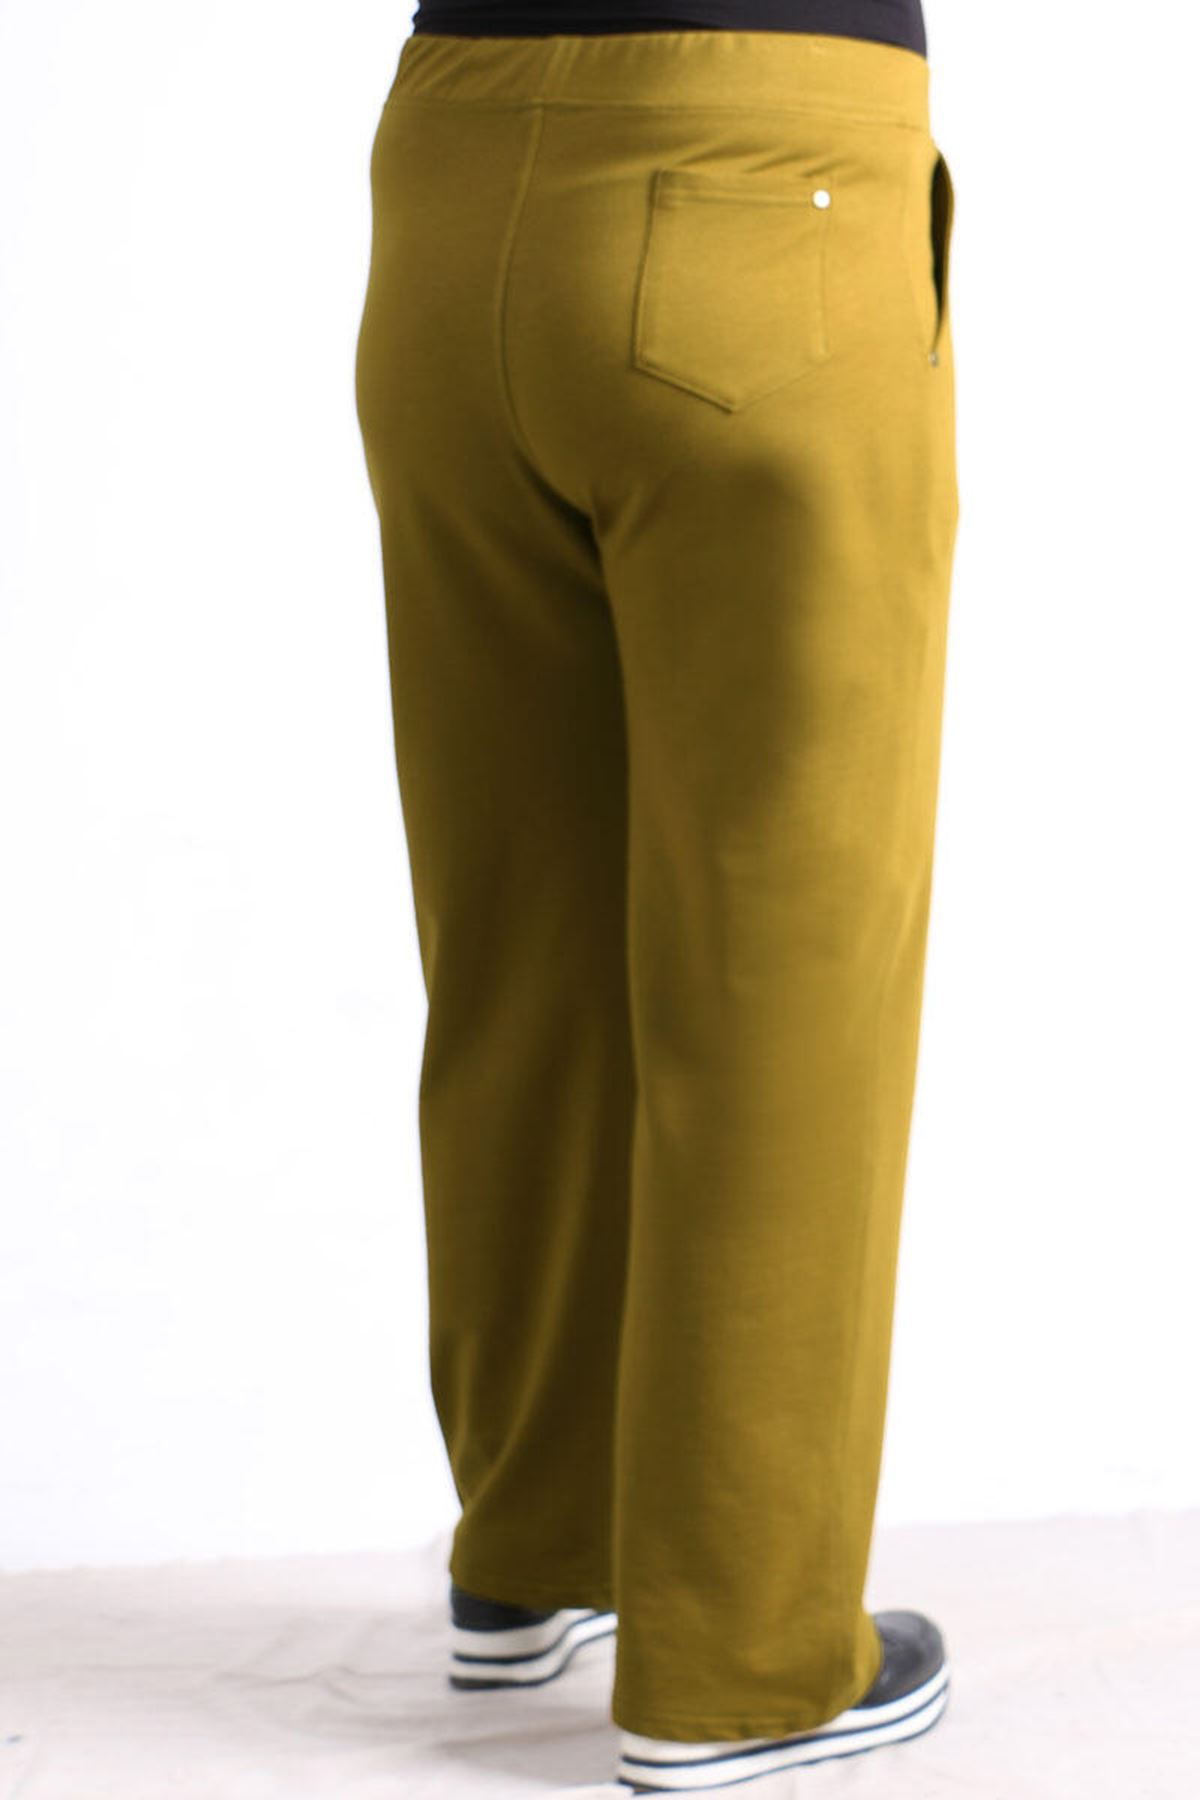 9506 Plus Size Sweatpants with Pocket - Olive Green